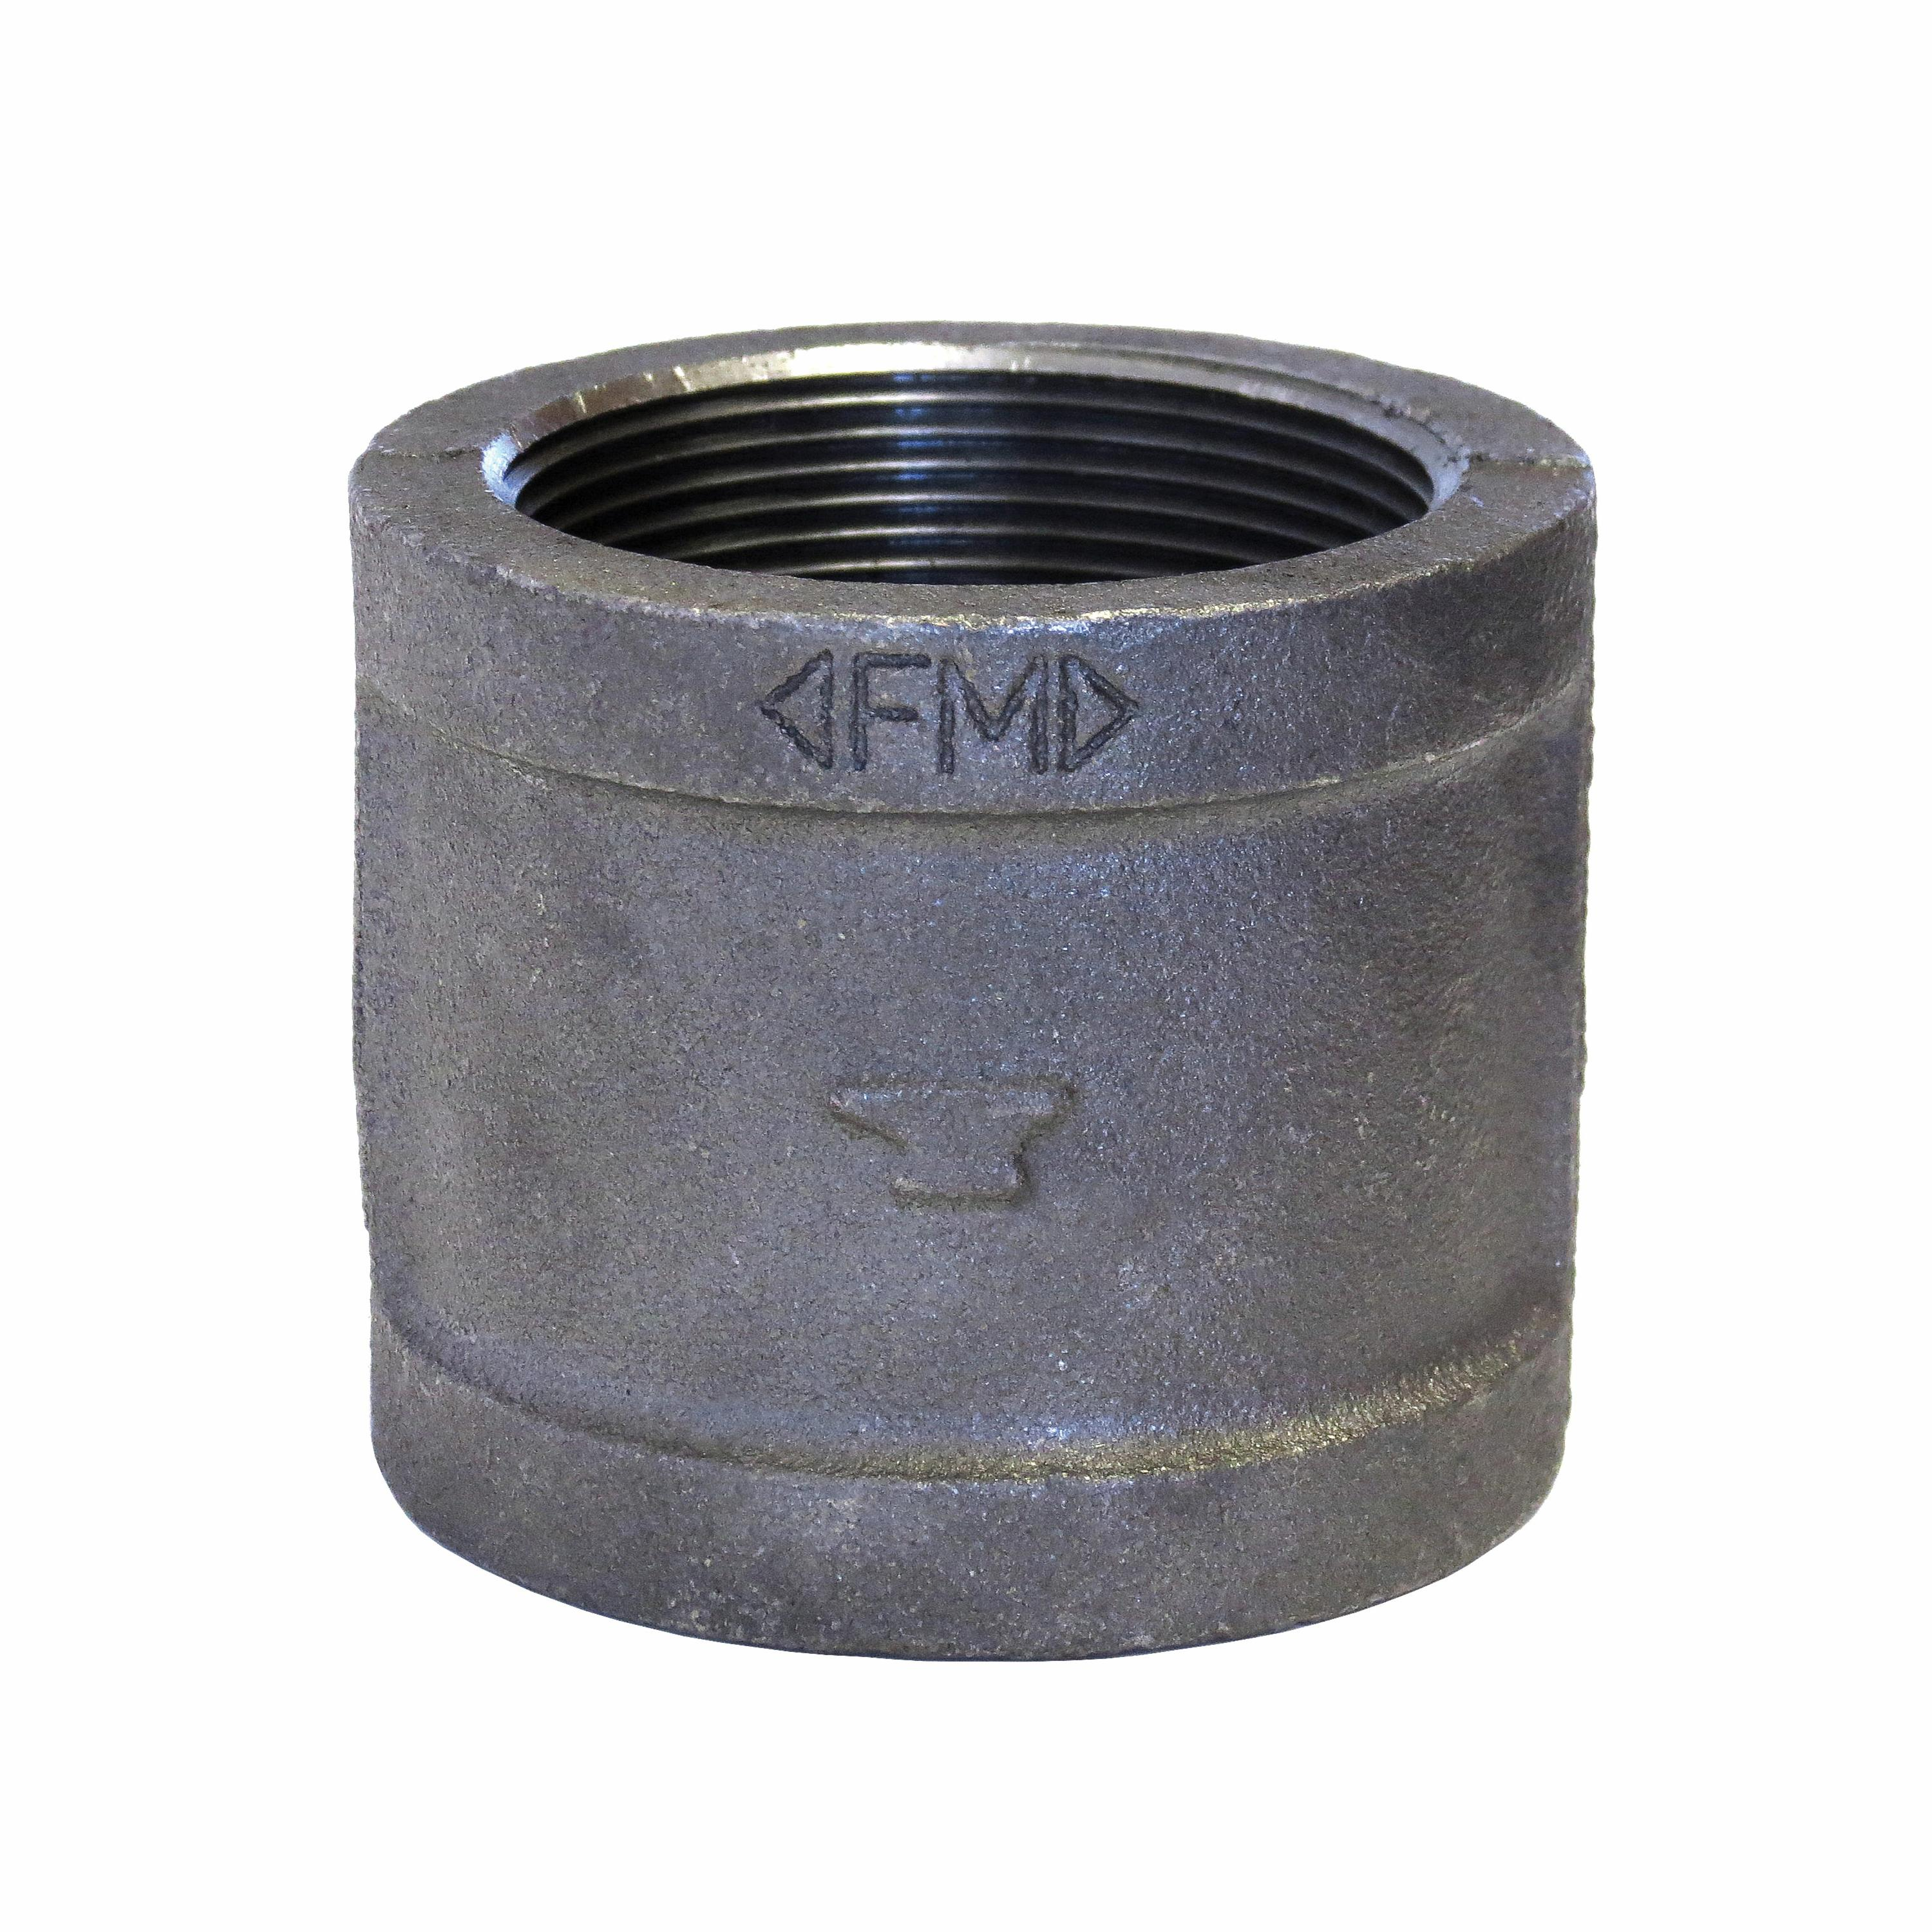 SPF/Anvil™ 0811080407 FIG 3121 Pipe Coupling, 3/4 in, FNPT, 150 lb, Malleable Iron, Galvanized, Import